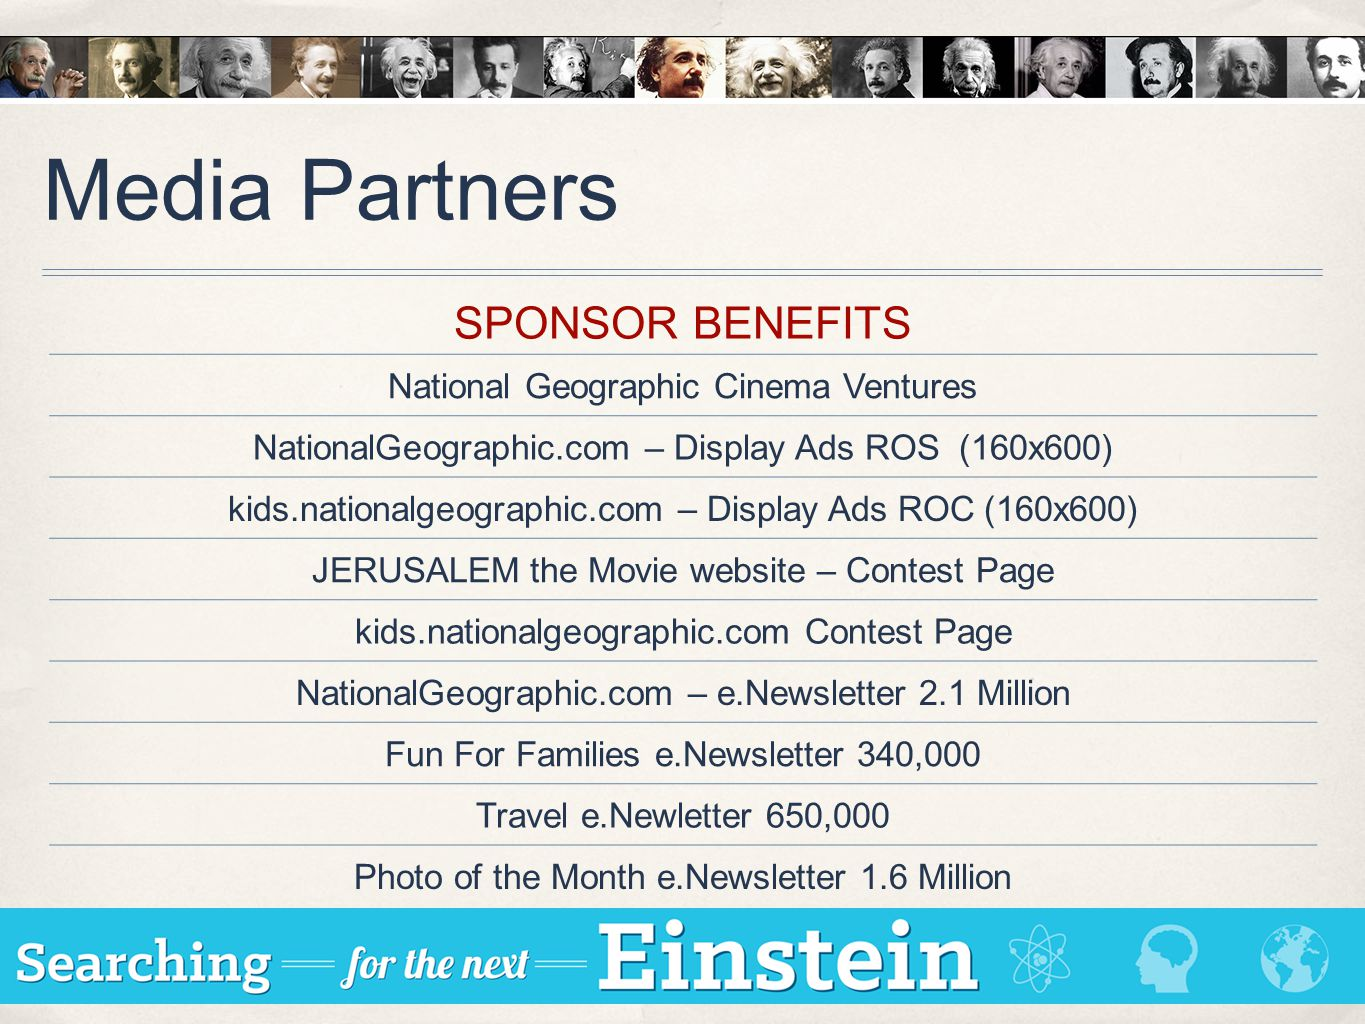 Media Partners SPONSOR BENEFITS National Geographic Cinema Ventures NationalGeographic.com – Display Ads ROS (160x600) kids.nationalgeographic.com – Display Ads ROC (160x600) JERUSALEM the Movie website – Contest Page kids.nationalgeographic.com Contest Page NationalGeographic.com – e.Newsletter 2.1 Million Fun For Families e.Newsletter 340,000 Travel e.Newletter 650,000 Photo of the Month e.Newsletter 1.6 Million